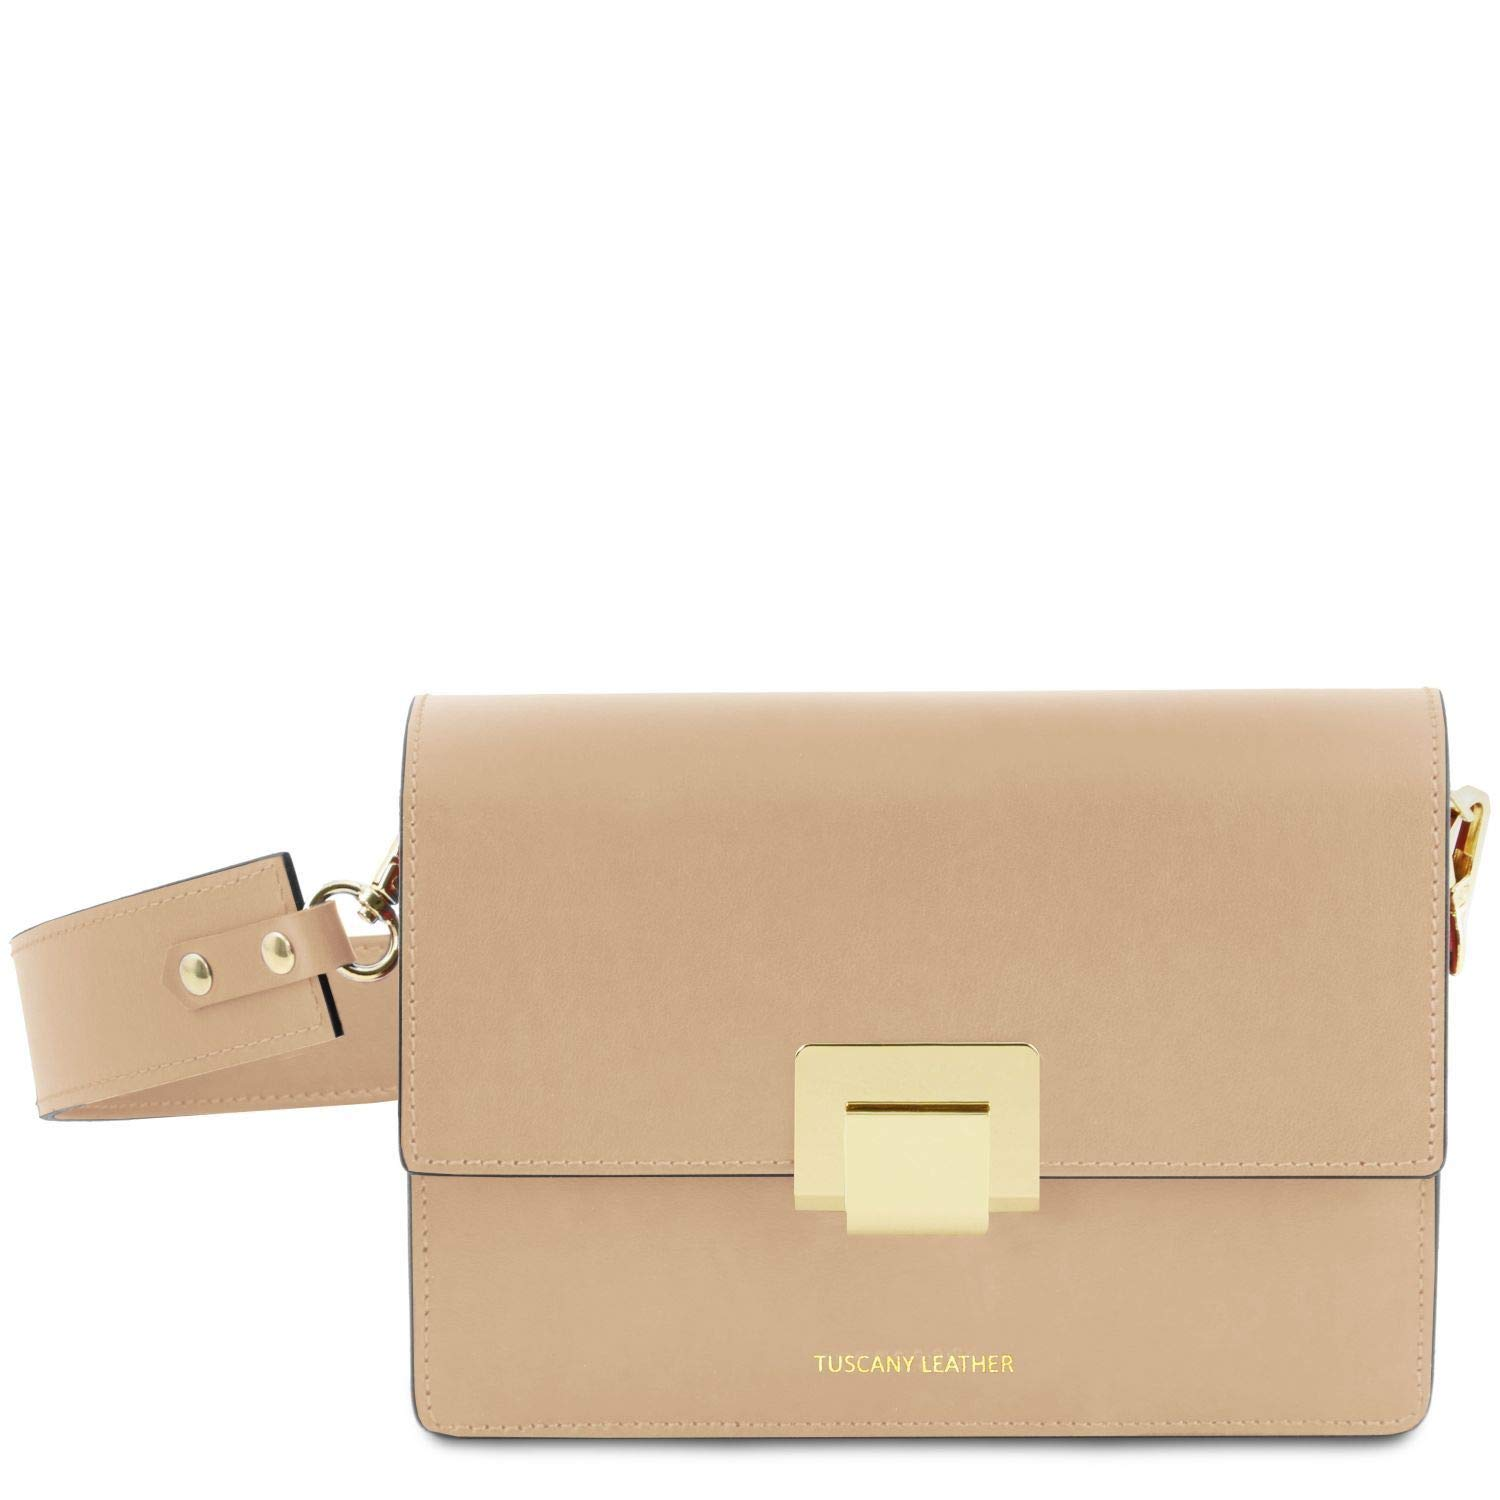 Champagne Tuscany Leather Adele Leather Clutch  TL141742 (Ballet Pink)